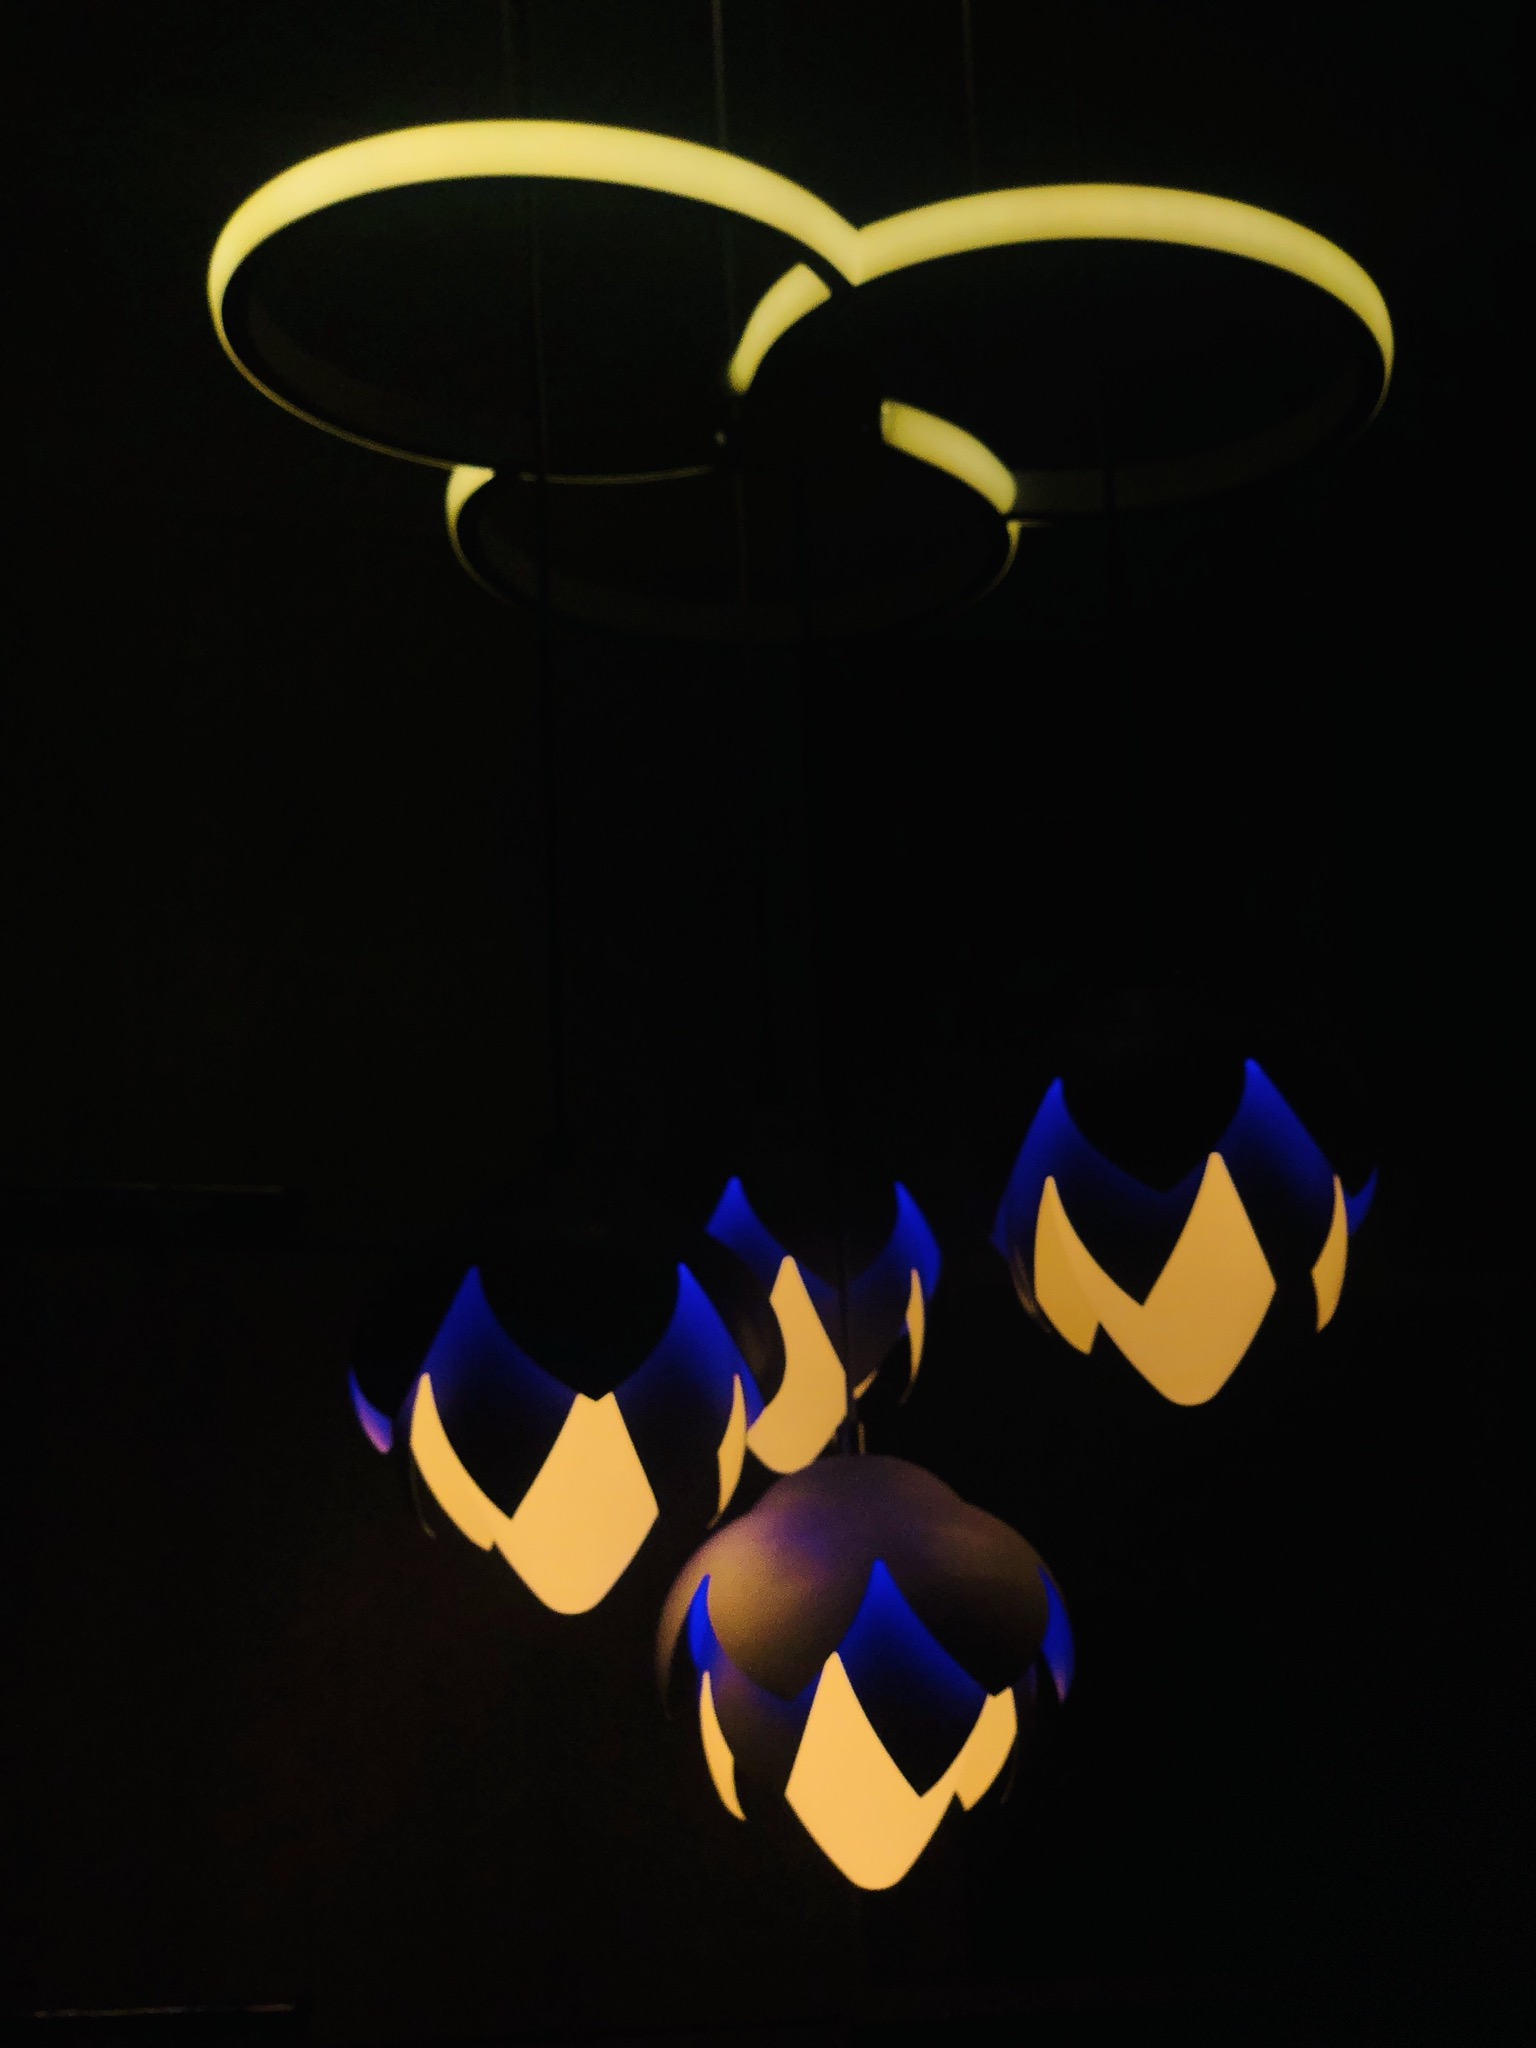 Lamps in darkness